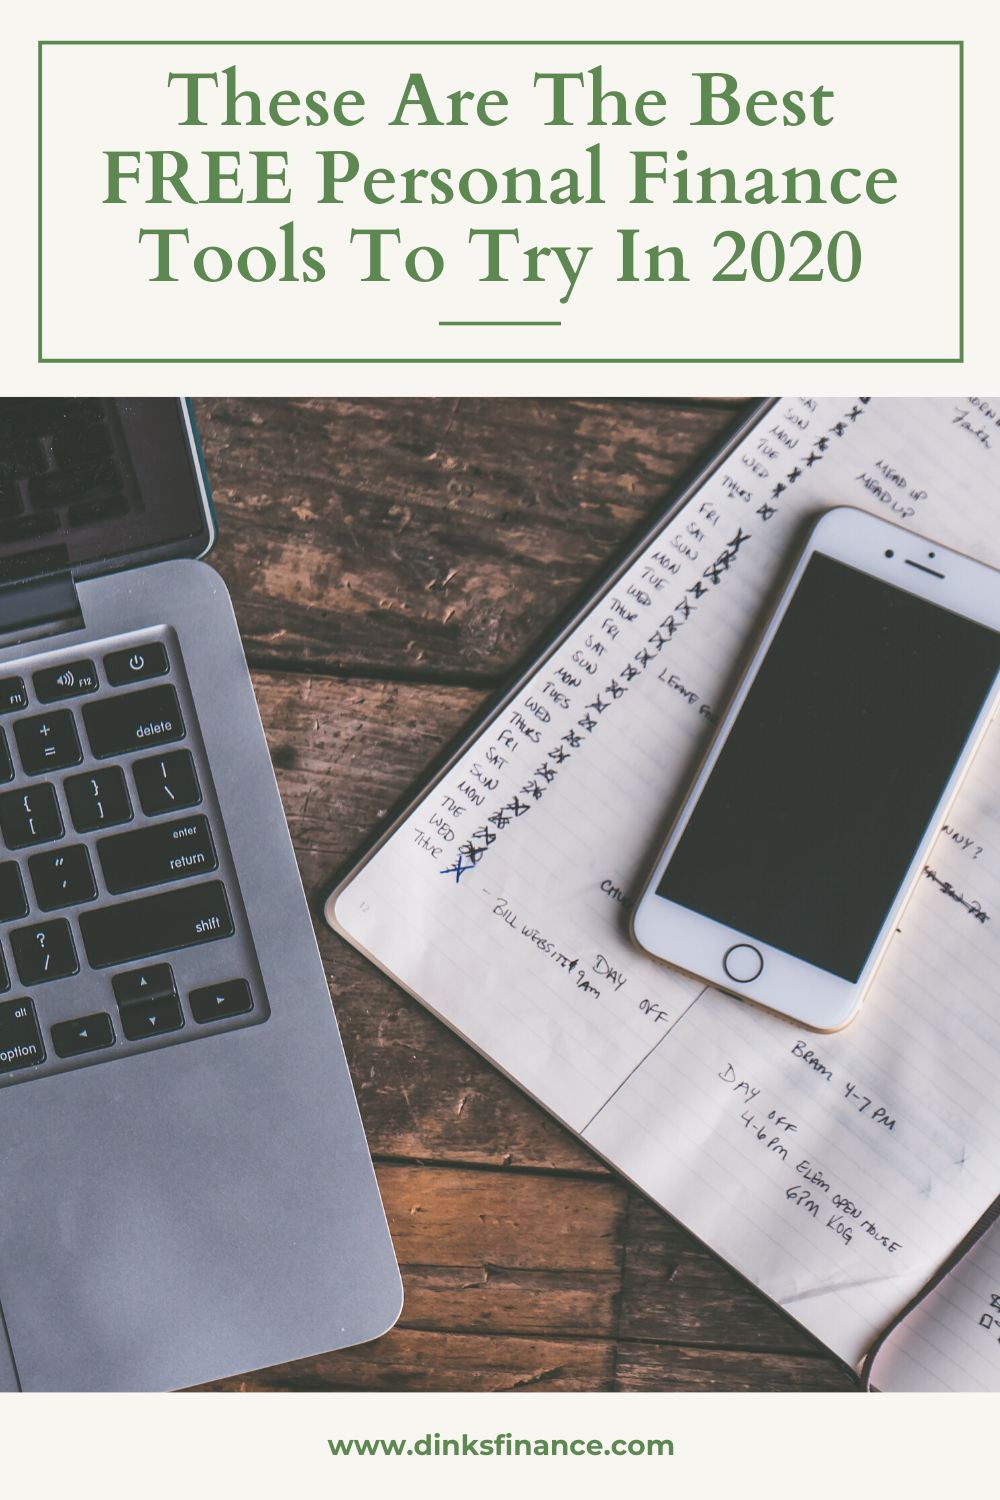 FREE Personal Finance Tools